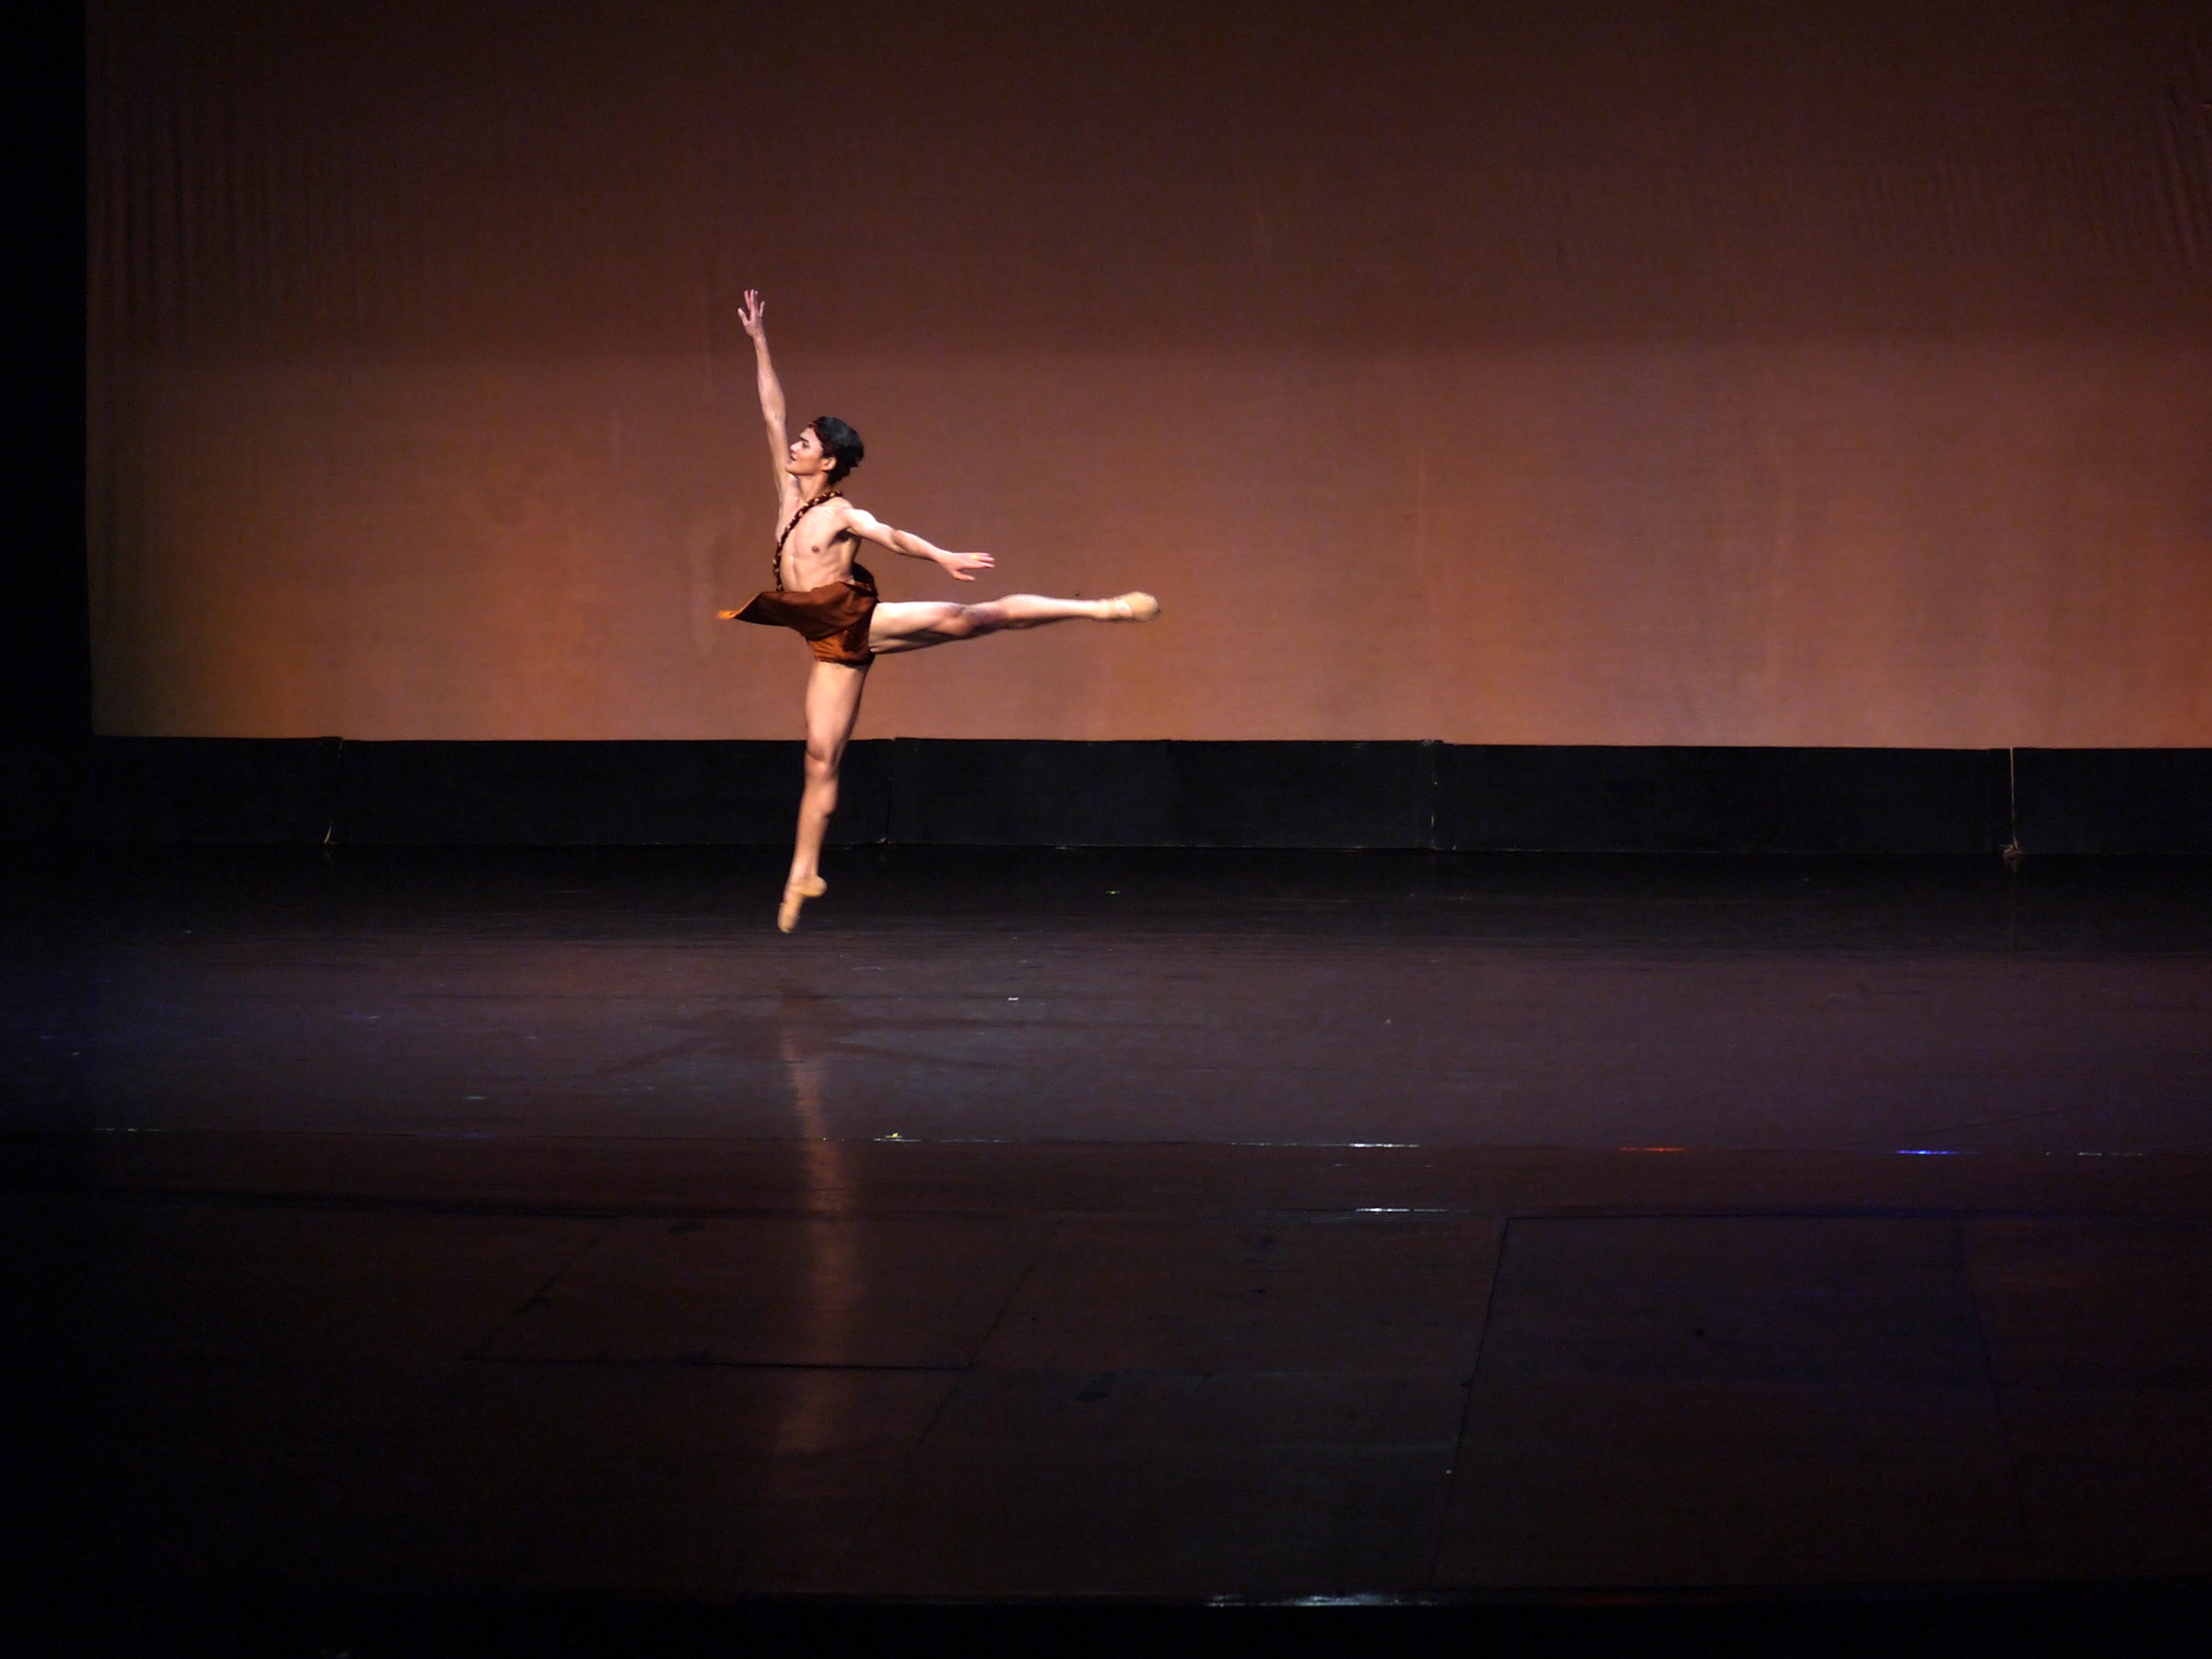 Performing the  Acteon  variation at the Cultural Center of the Philippines Ballet Competition, Joshua wowed the audience and was named first prize winner in the senior category. Photo by Giselle P. Kasilag